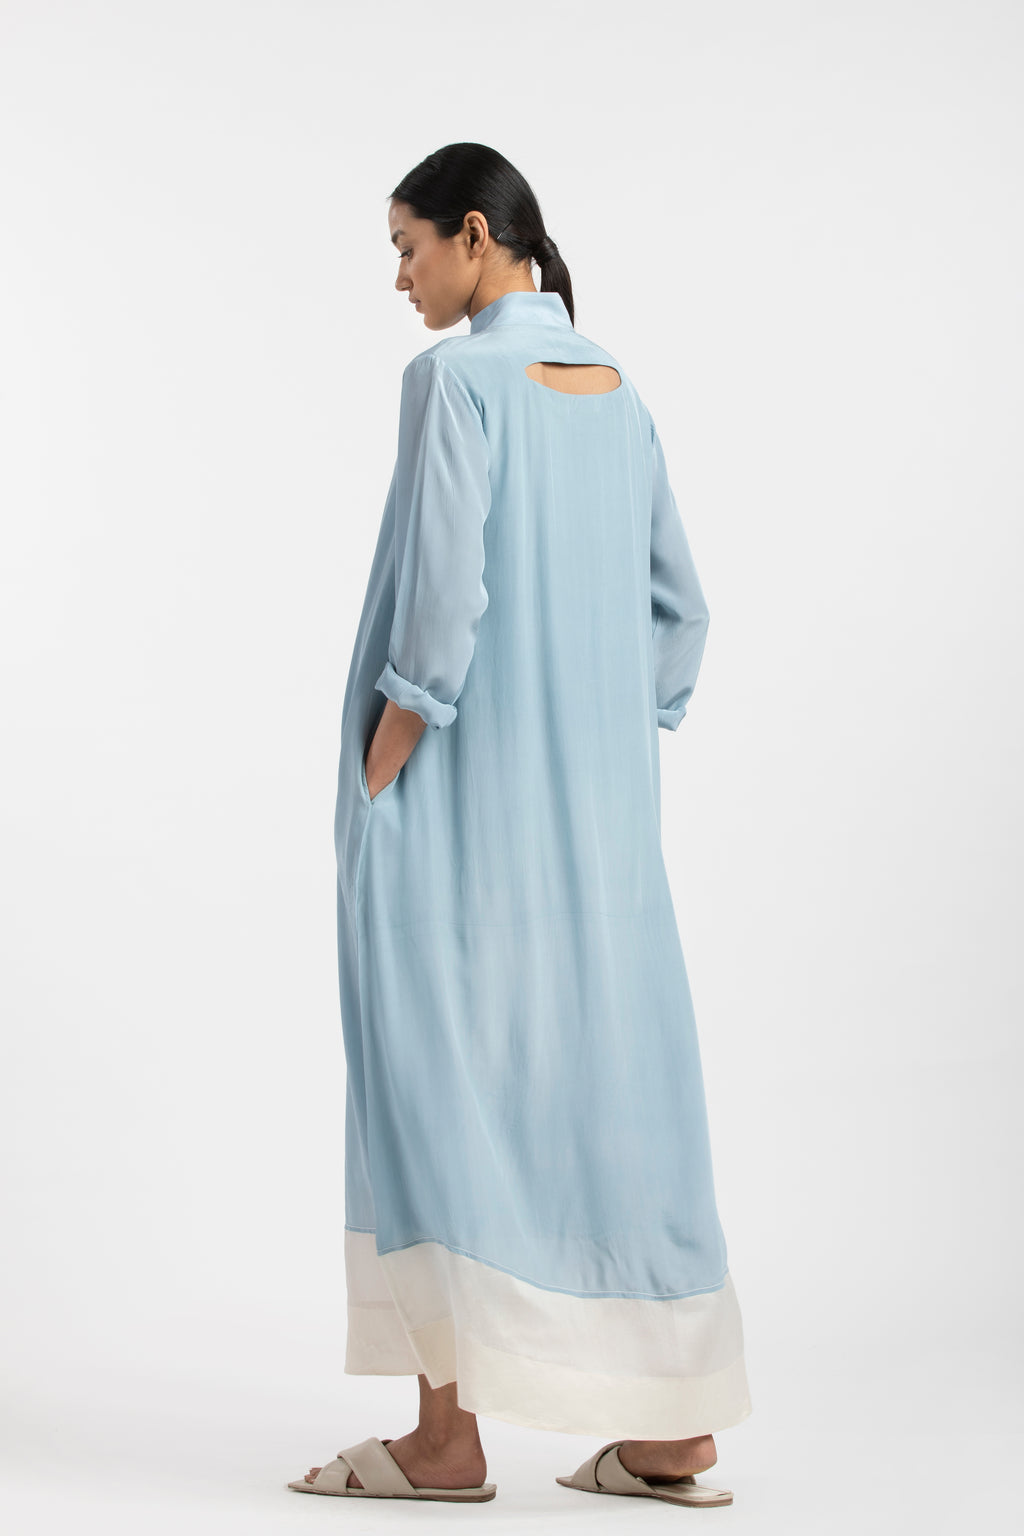 Turtle Neck Dress- Powder Blue